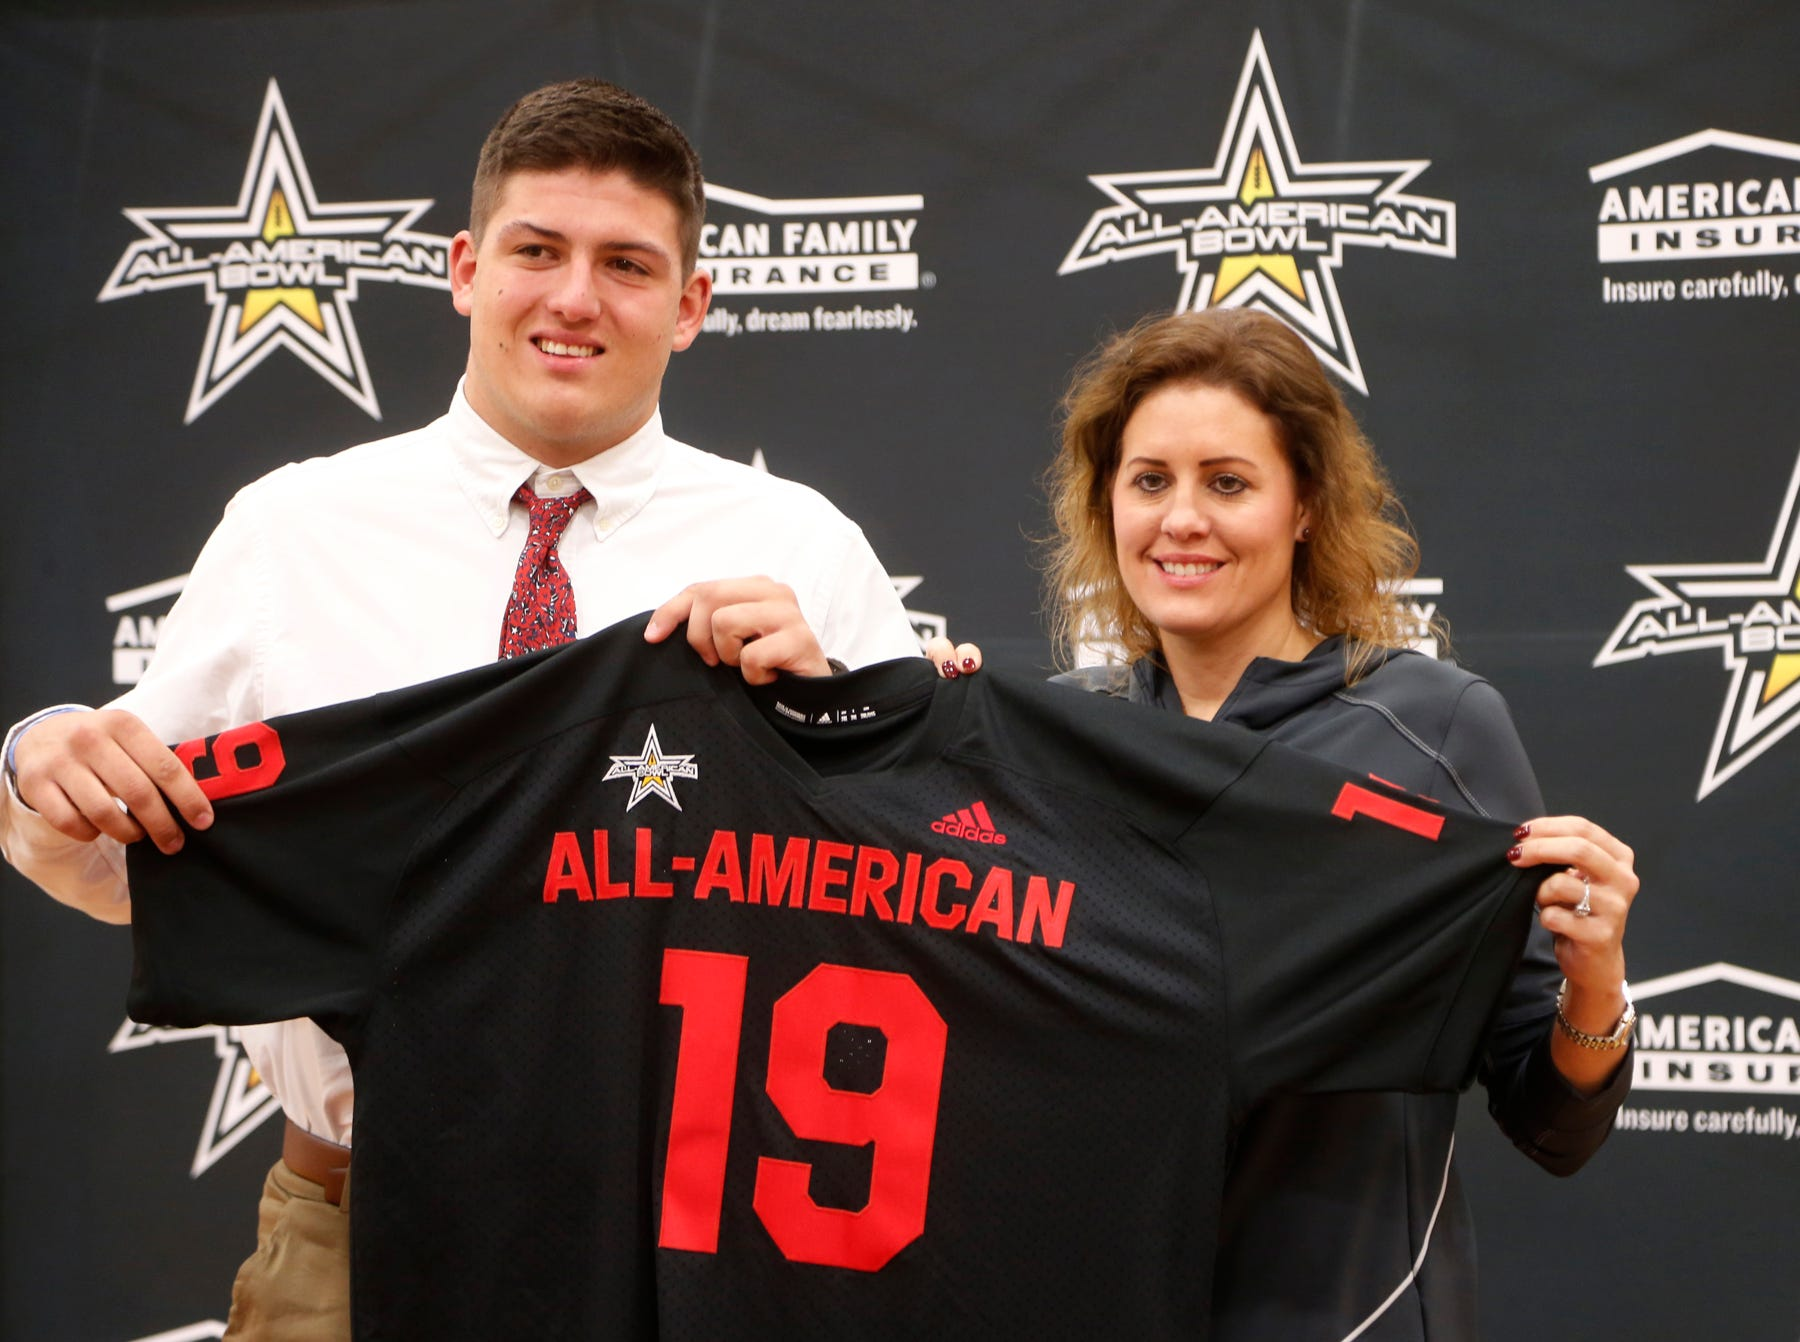 West Lafayette senior George Karlaftis is joined by his mother Amy moments after receiving his jersey for the All-American Bowl presented by American Family Insurance Monday, October 29, 2018, at West Lafayette High School.